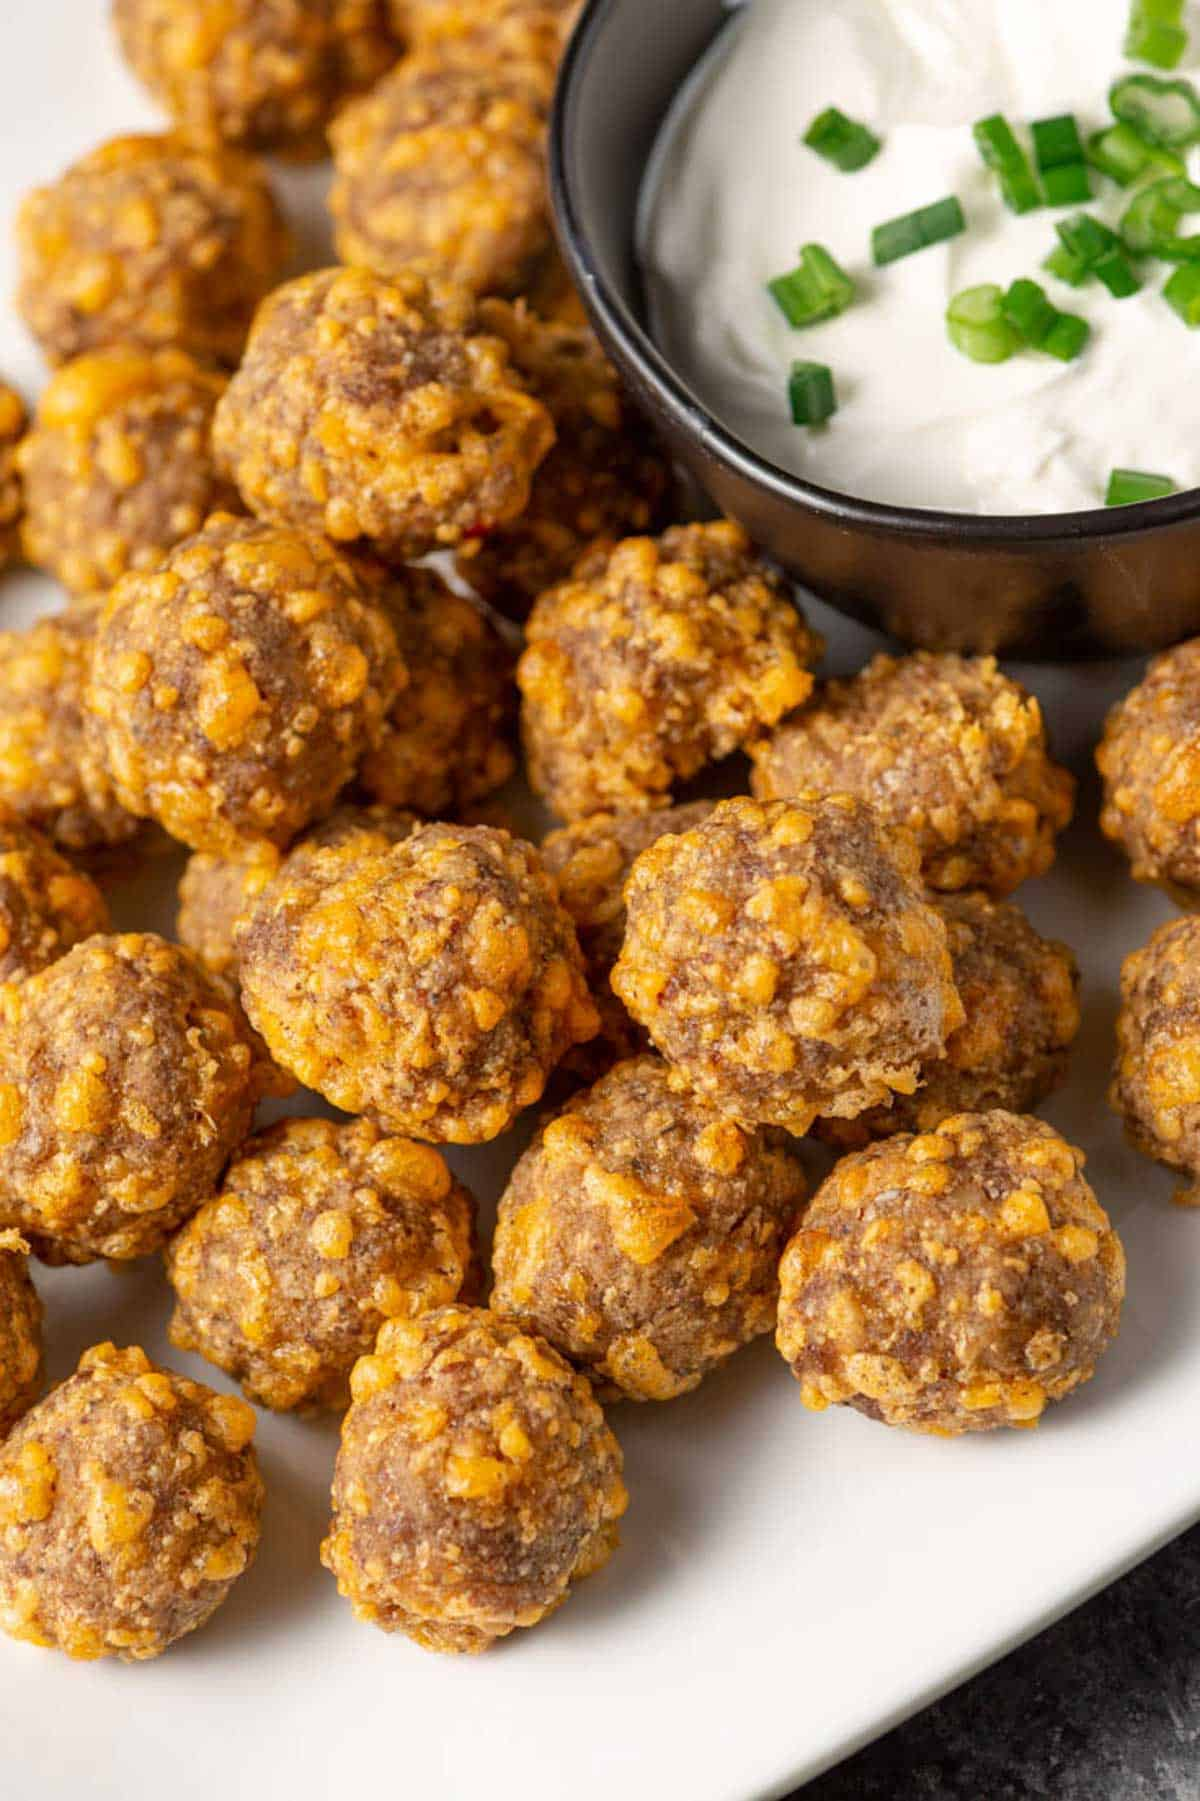 Low carb sausage balls on a serving tray.